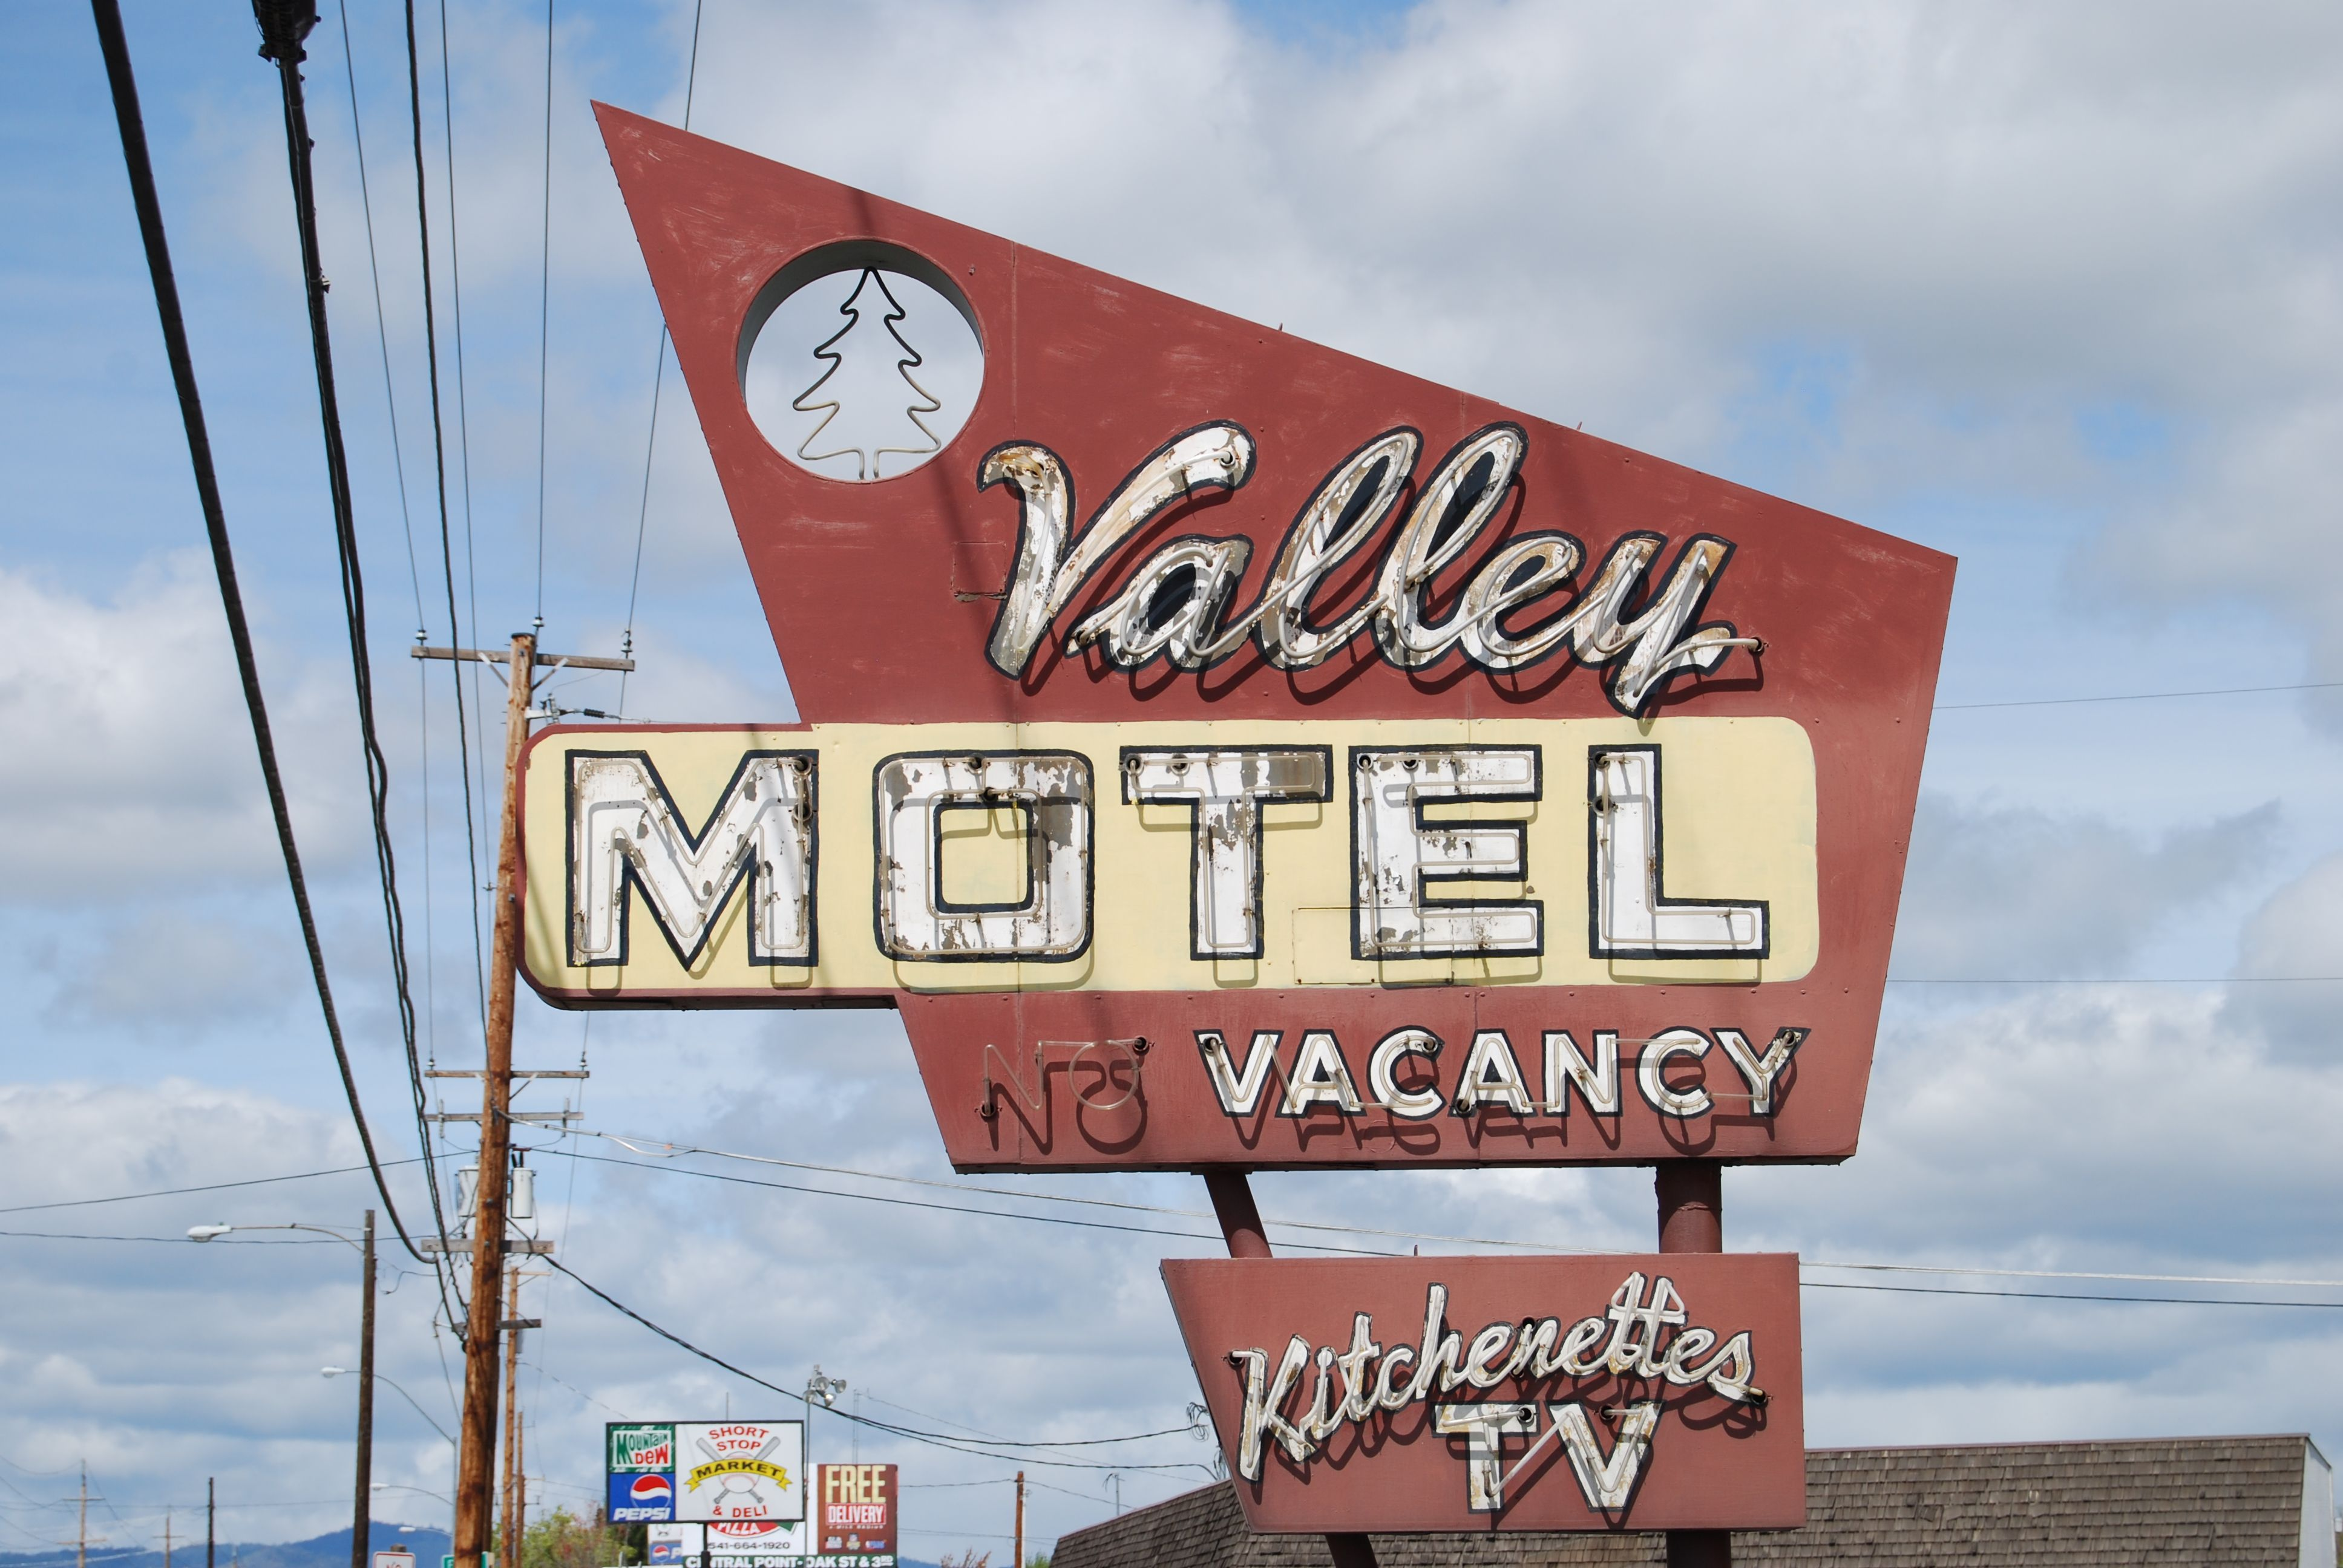 Valley motel and apartments at 3250 n pacific highway in medford oregon note the pine tree in the circular cutout